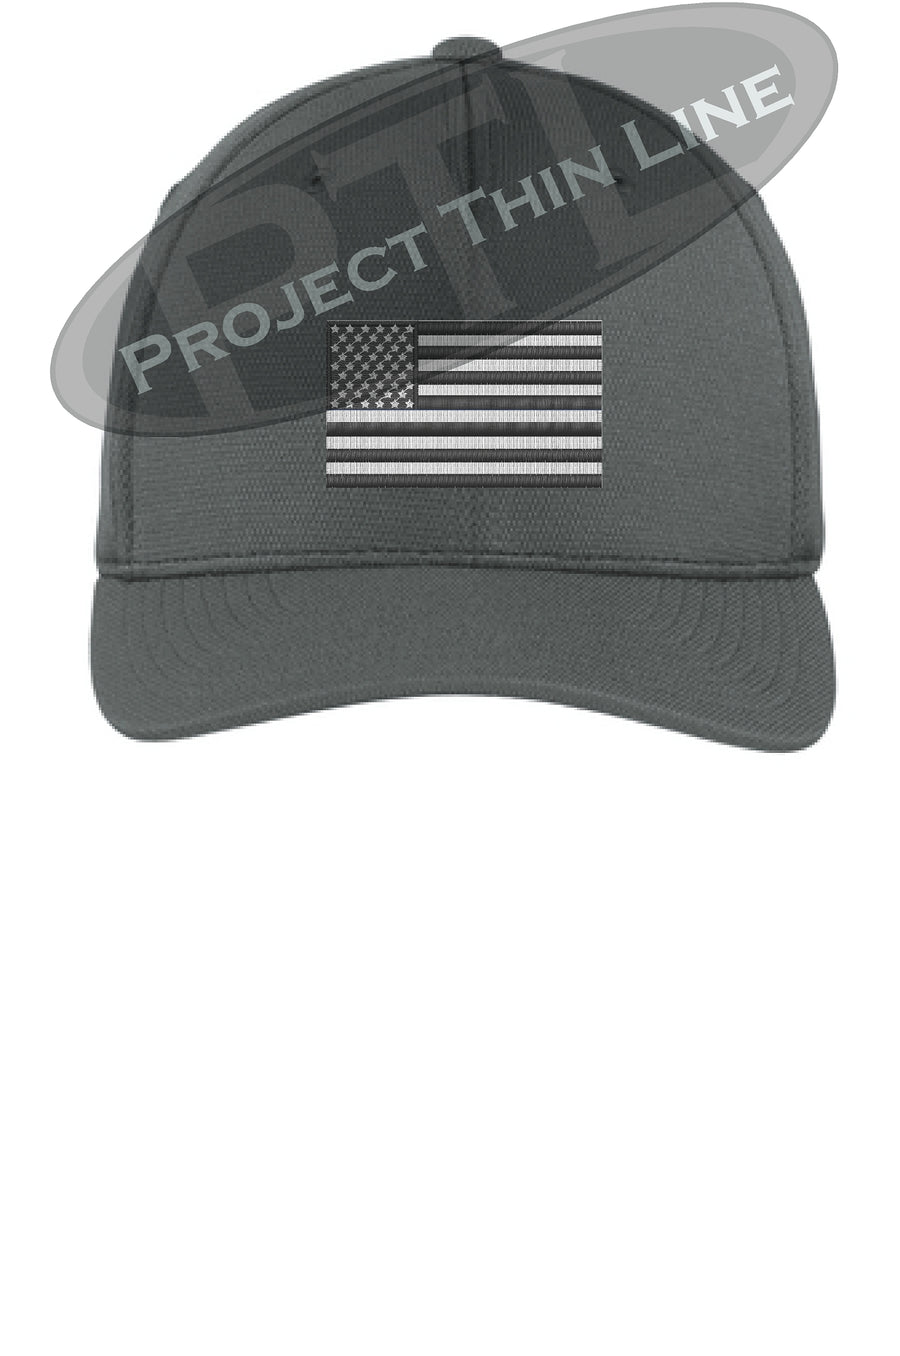 Embroidered Tactical / Subdued American Flag Flex Fit Fitted TRUCKER Hat